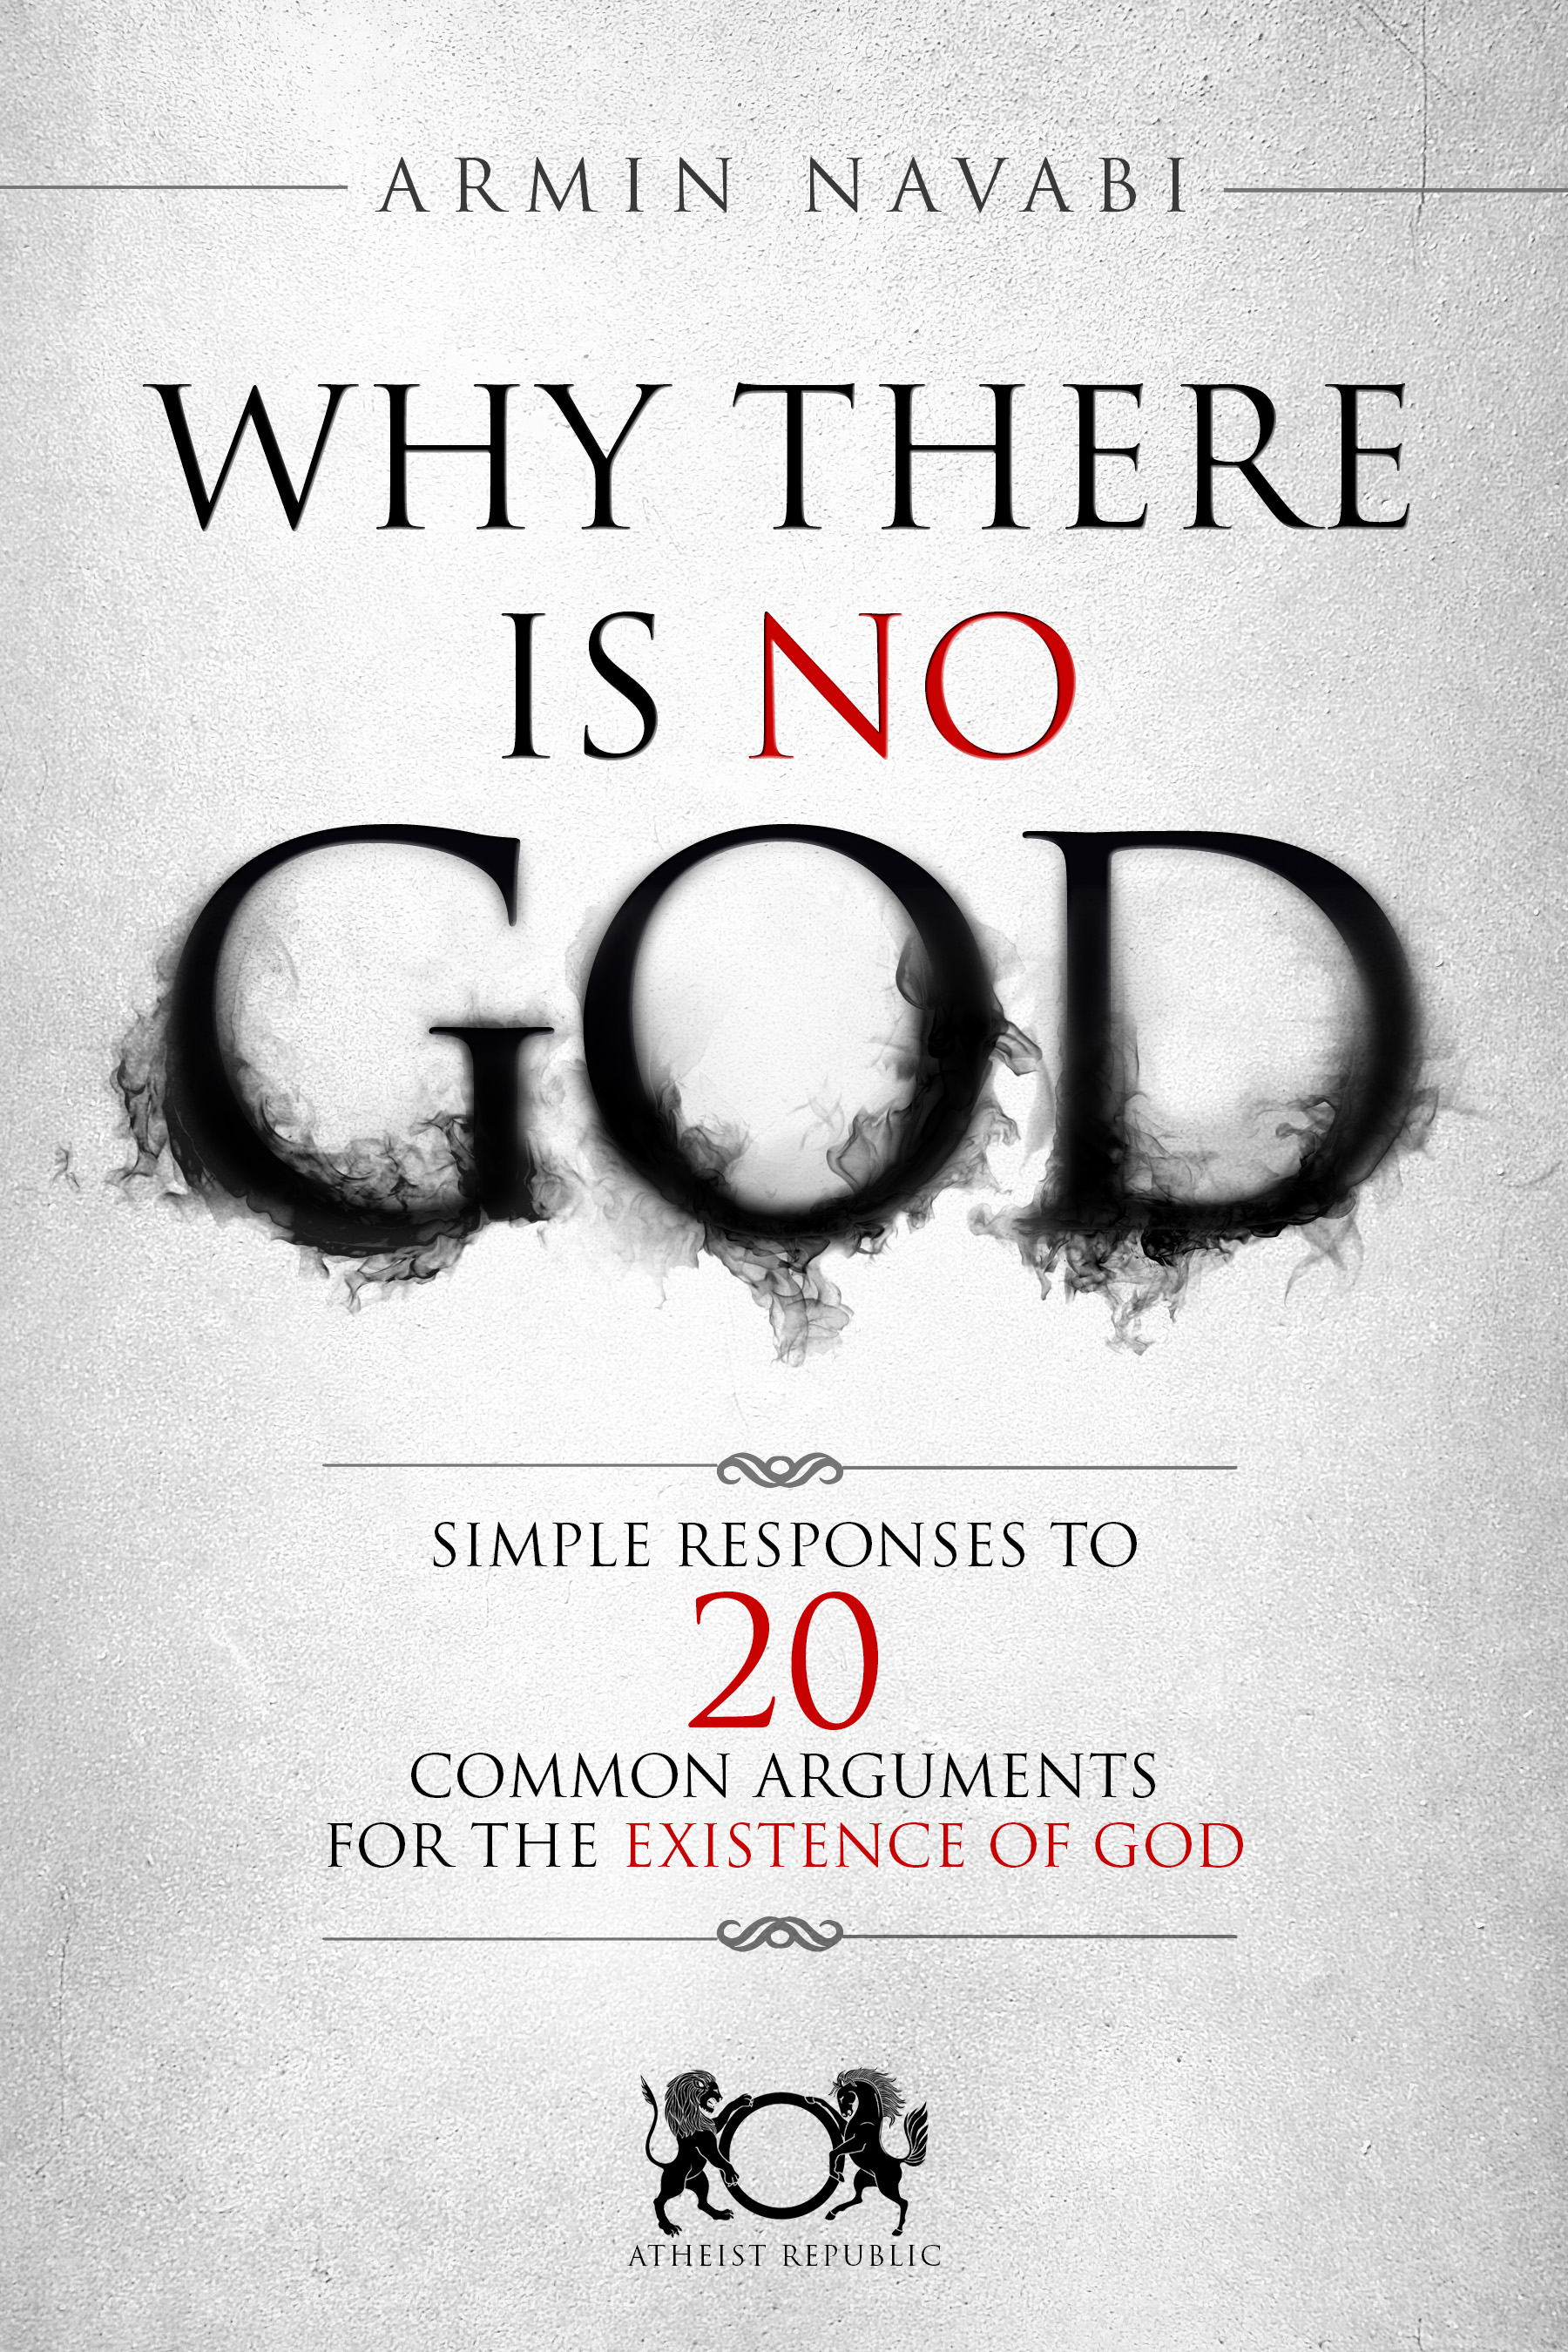 the search for the existence of god Free existence of god papers, essays, and research papers but we can search and find out if there is a real god or not even if we don't have much evidence.